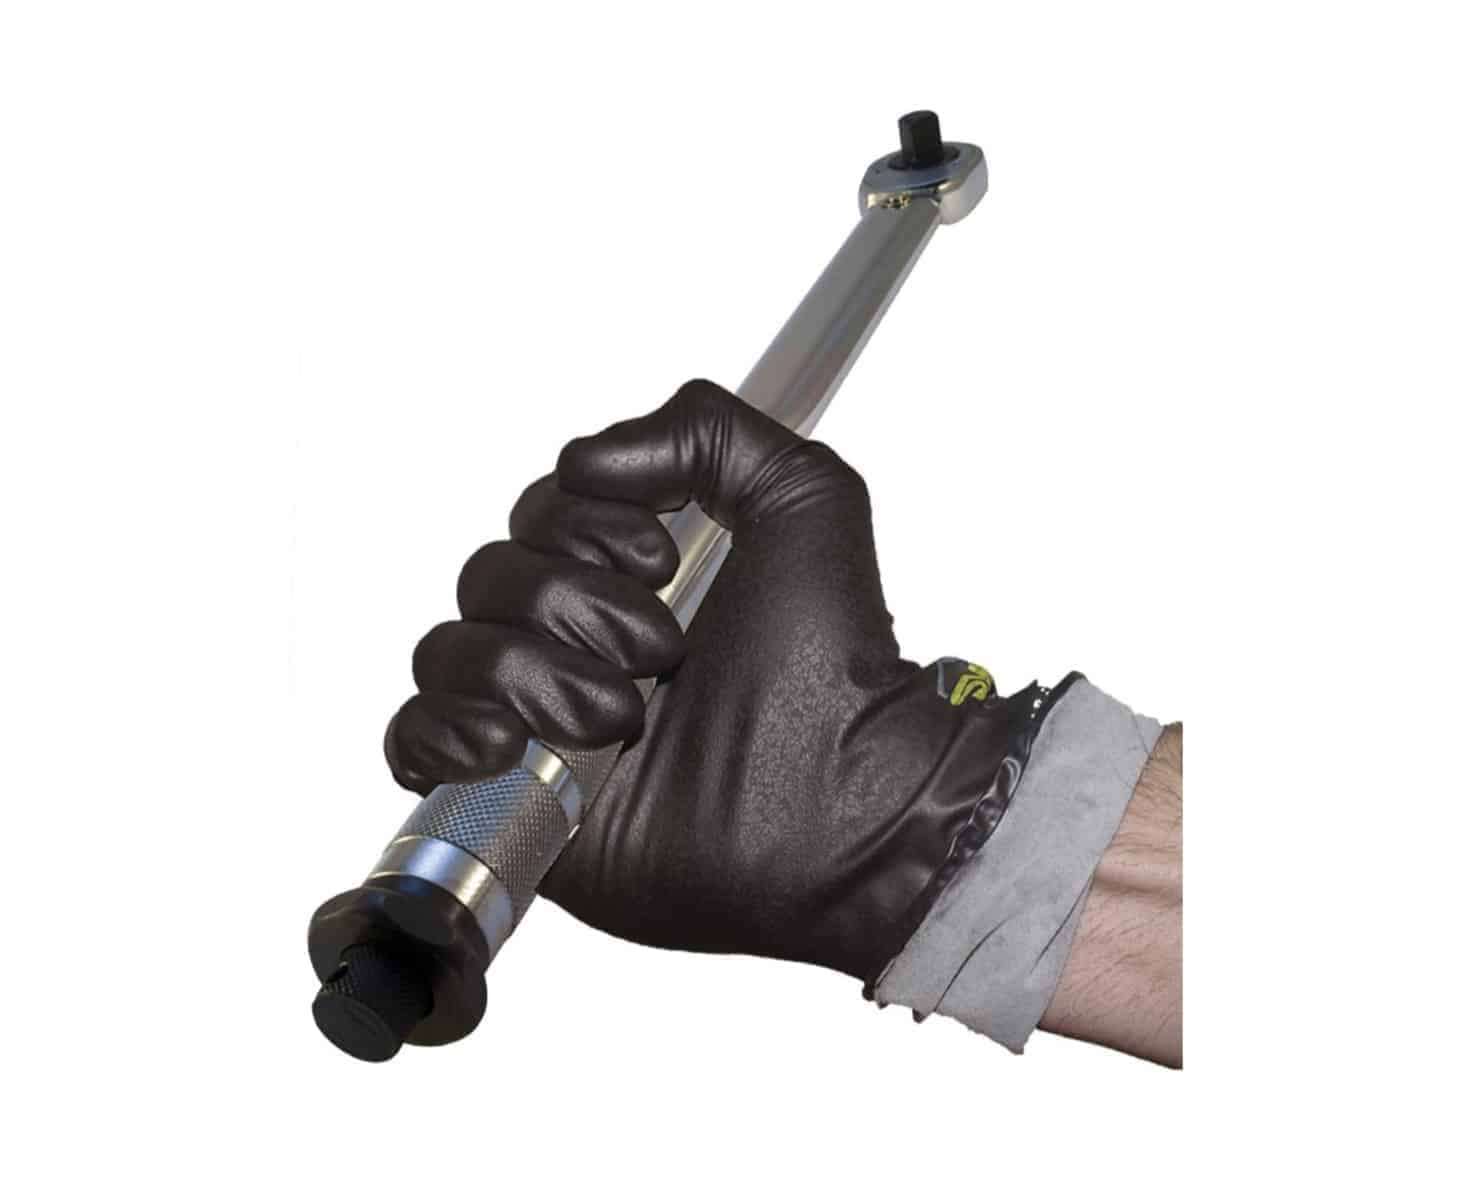 Megaman Flocked Sweat-absorbing Moisture-wicking Lined Nitrile Industrial Gloves